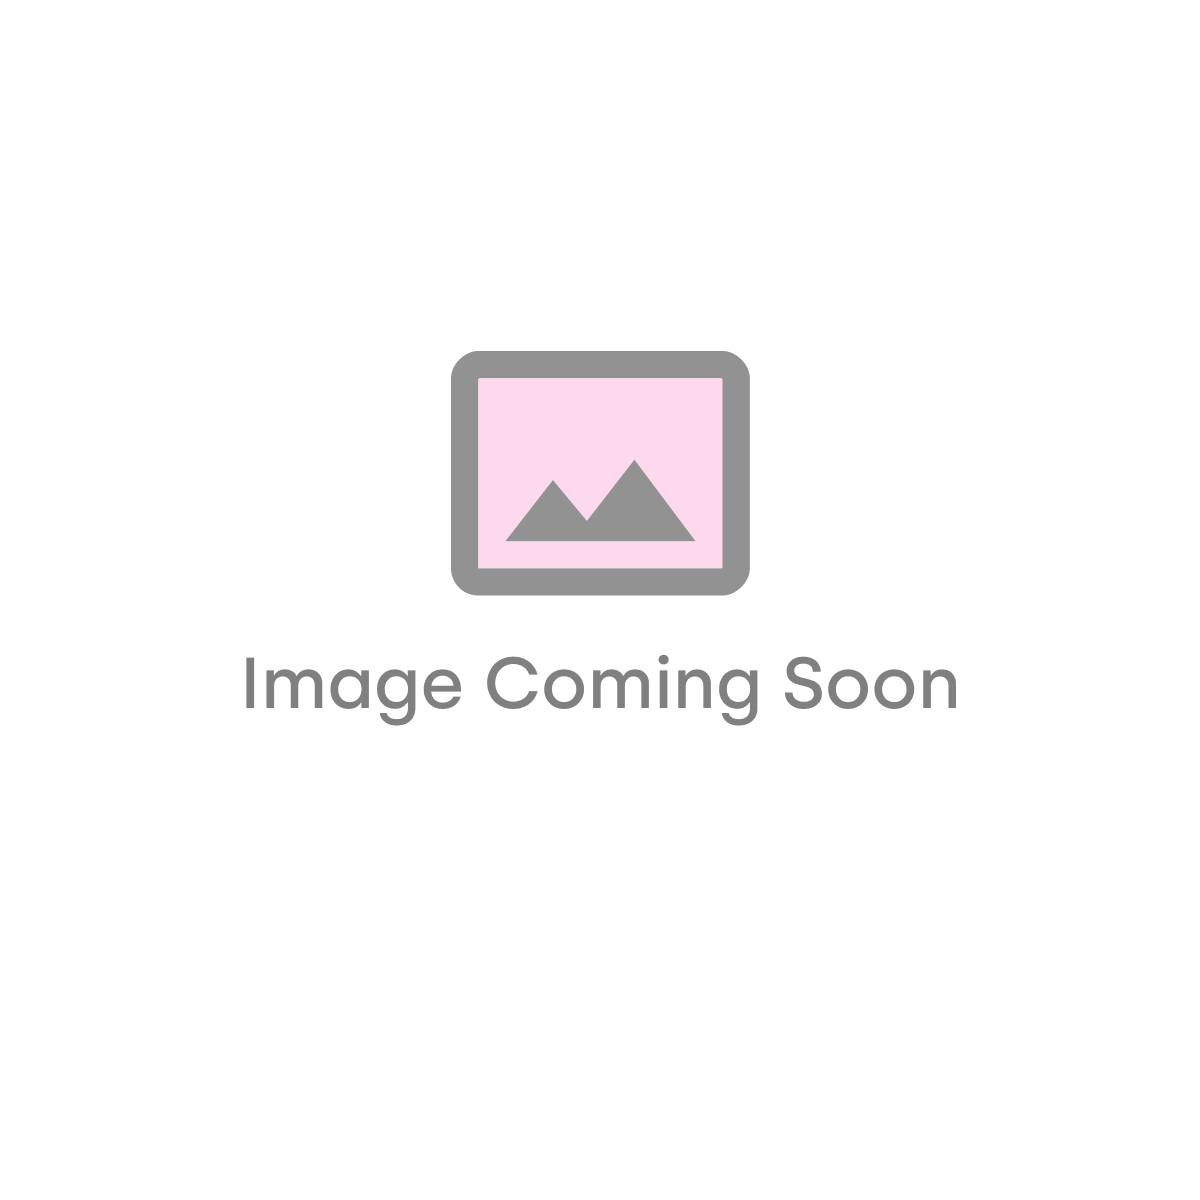 Eliseo Ricci Traditional Instant Boiling Water Kitchen Tap - Gunmetal Grey - 14984